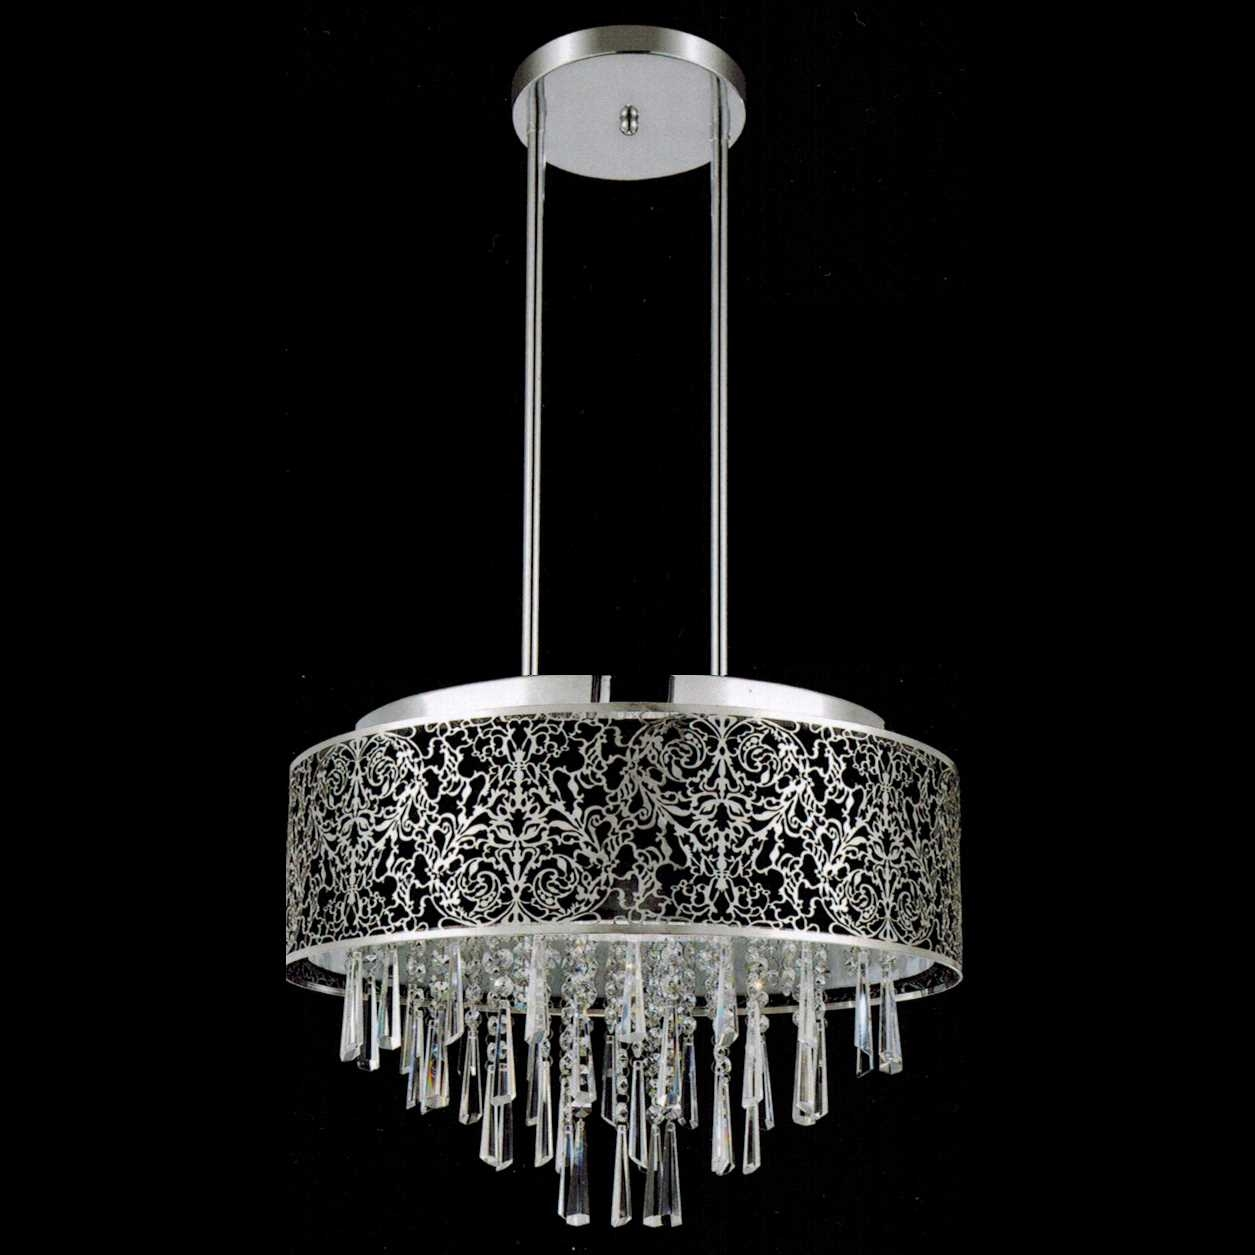 Chandelier Contemporary Chandelier Lights Awesome Image Concept Pertaining To Black Contemporary Chandelier (#4 of 12)